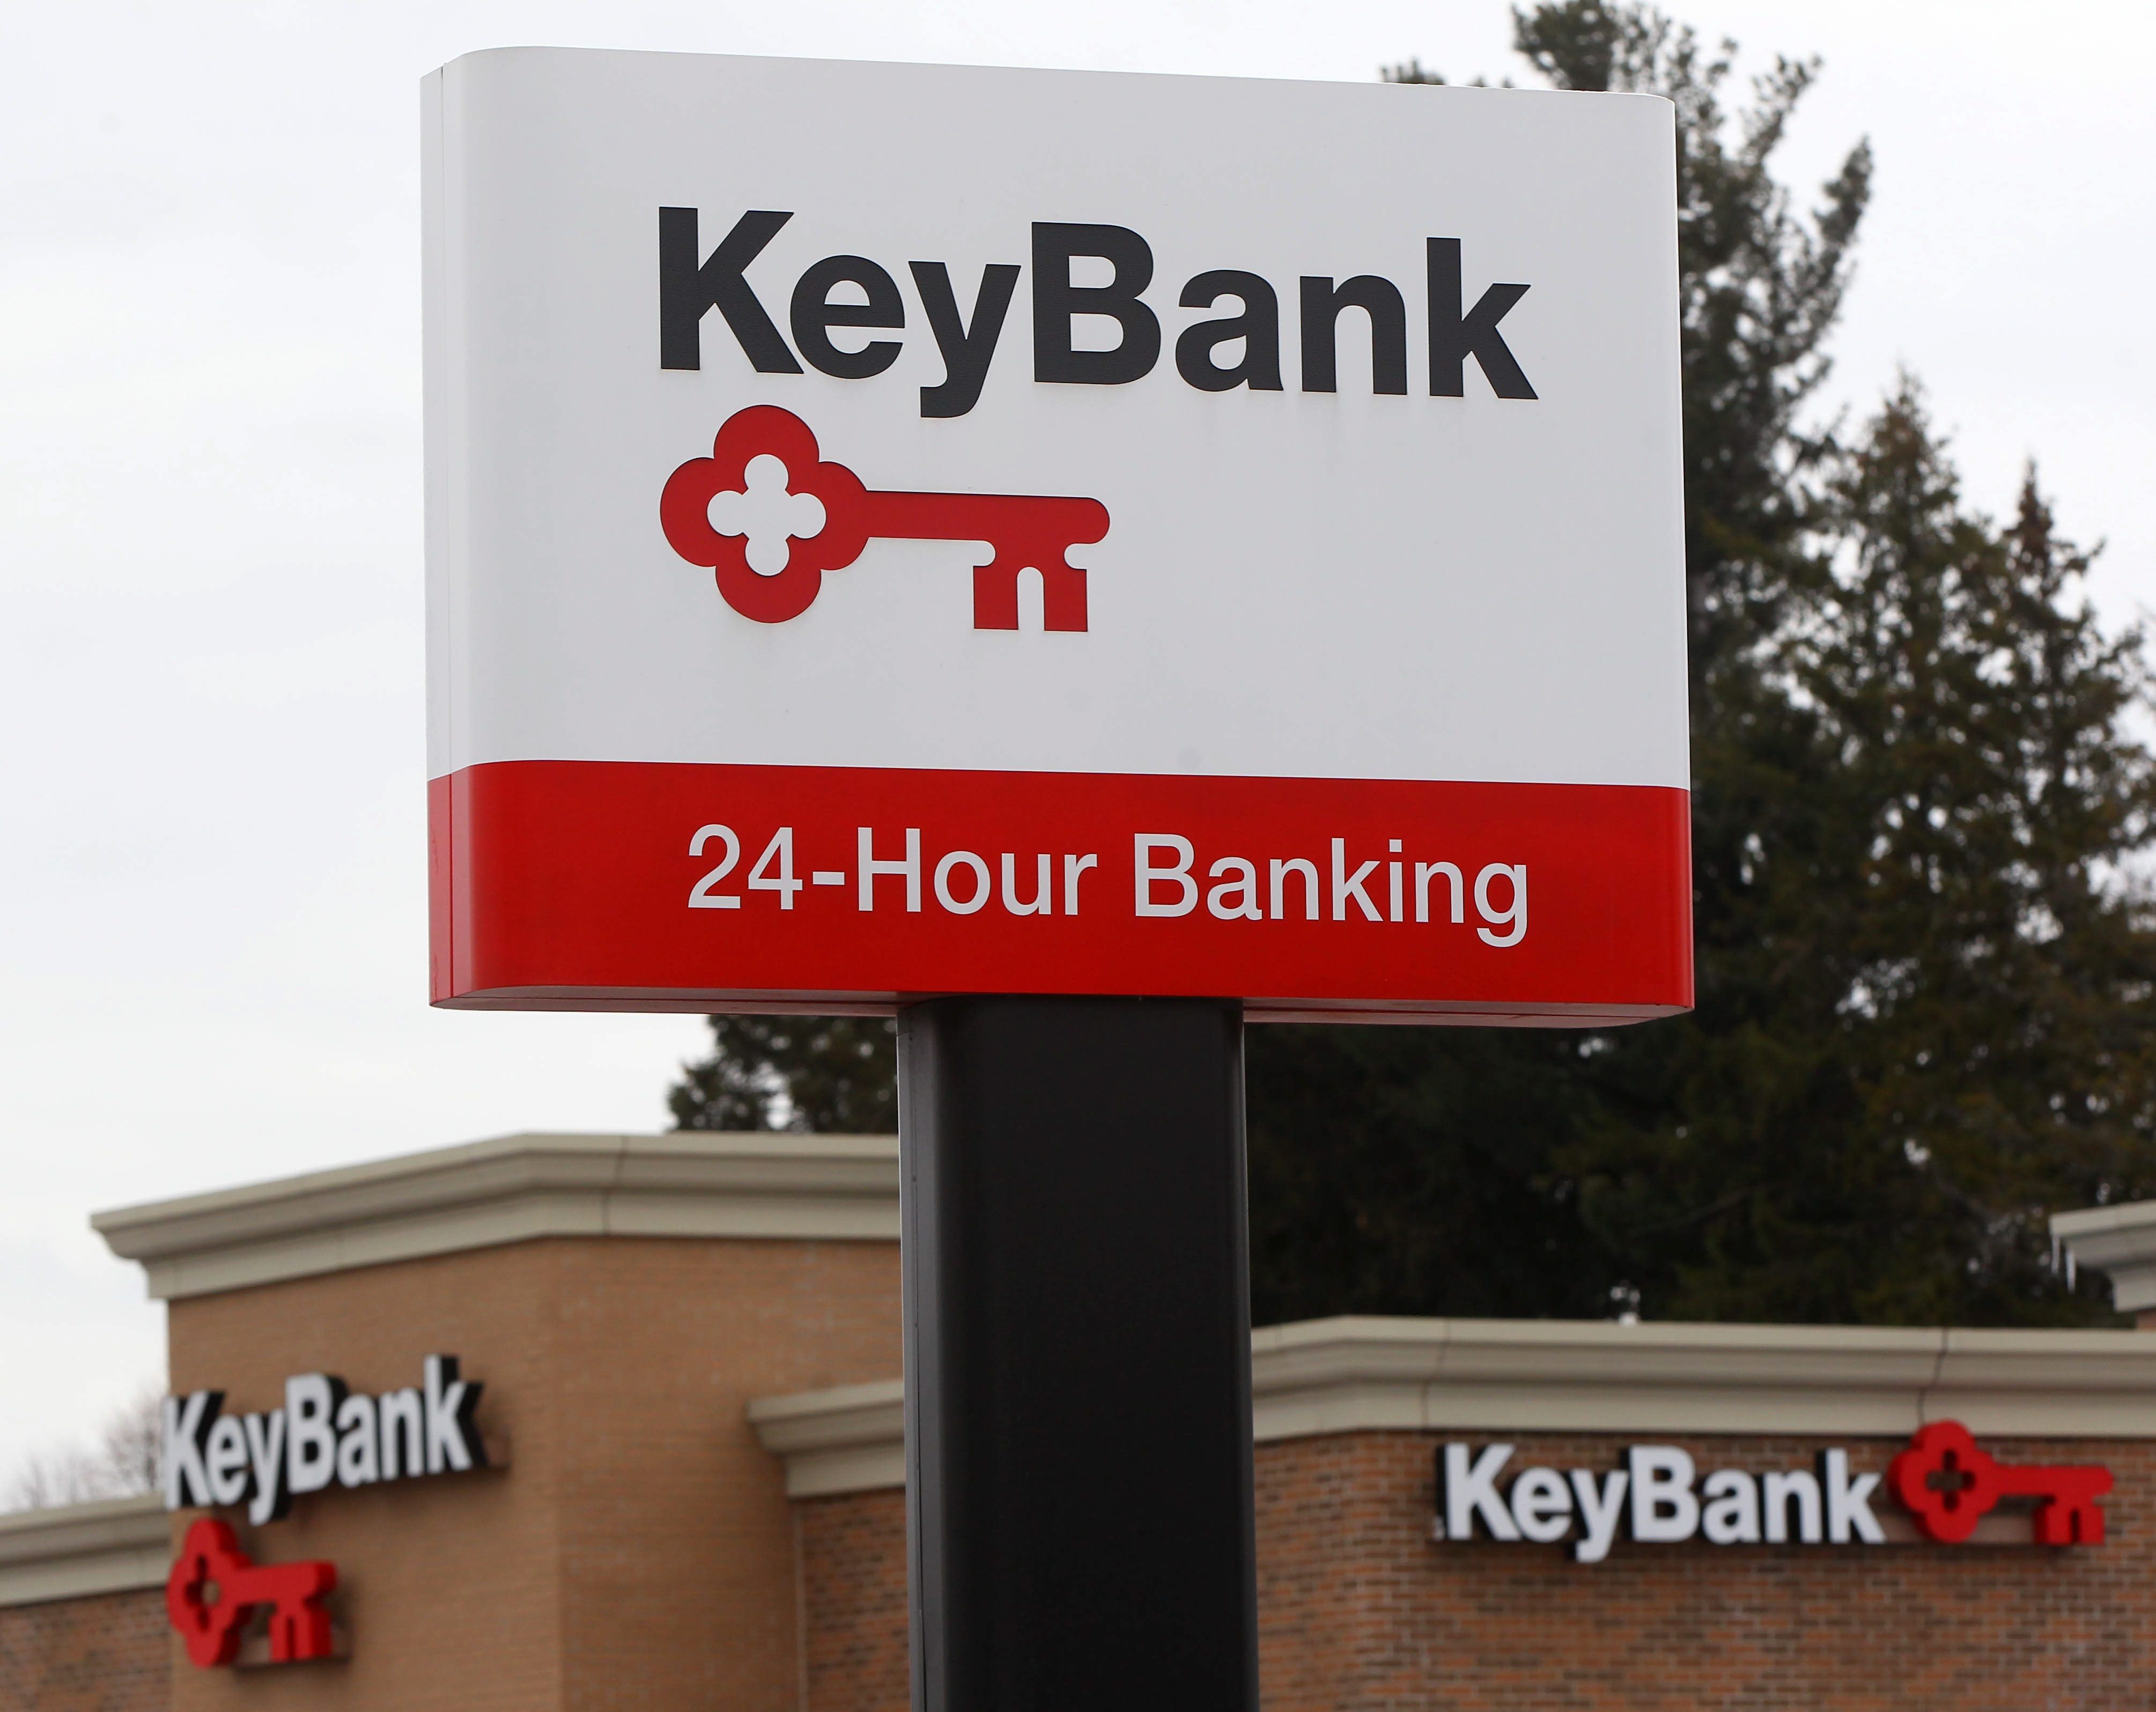 A KeyBank branch will be opened on the East Side of Buffalo, according to a summary of a community benefits agreement revealed on Friday. (Mark Mulville/Buffalo News file photo)